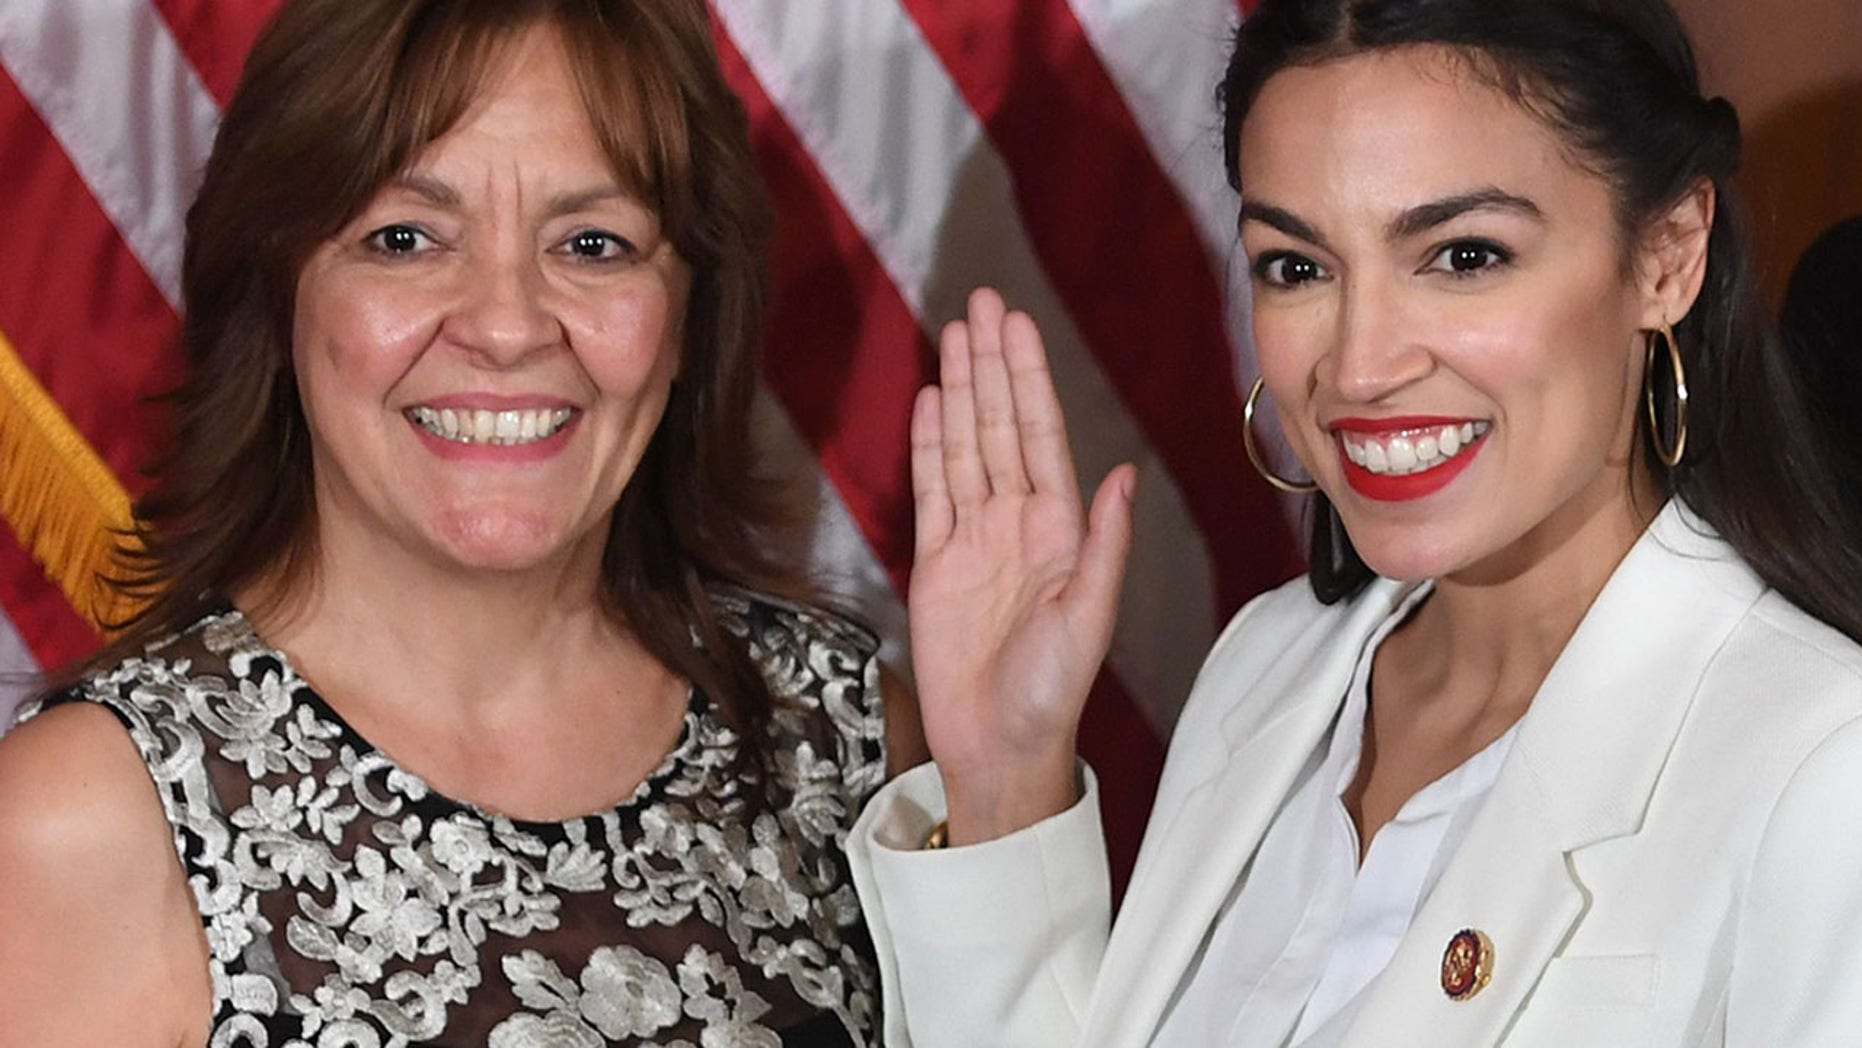 ​ Bianca Ocasio-Cortez and US House Representative Alexandria Ocasio-Cortez (Photo credit should read SAUL LOEB/AFP/Getty Images)